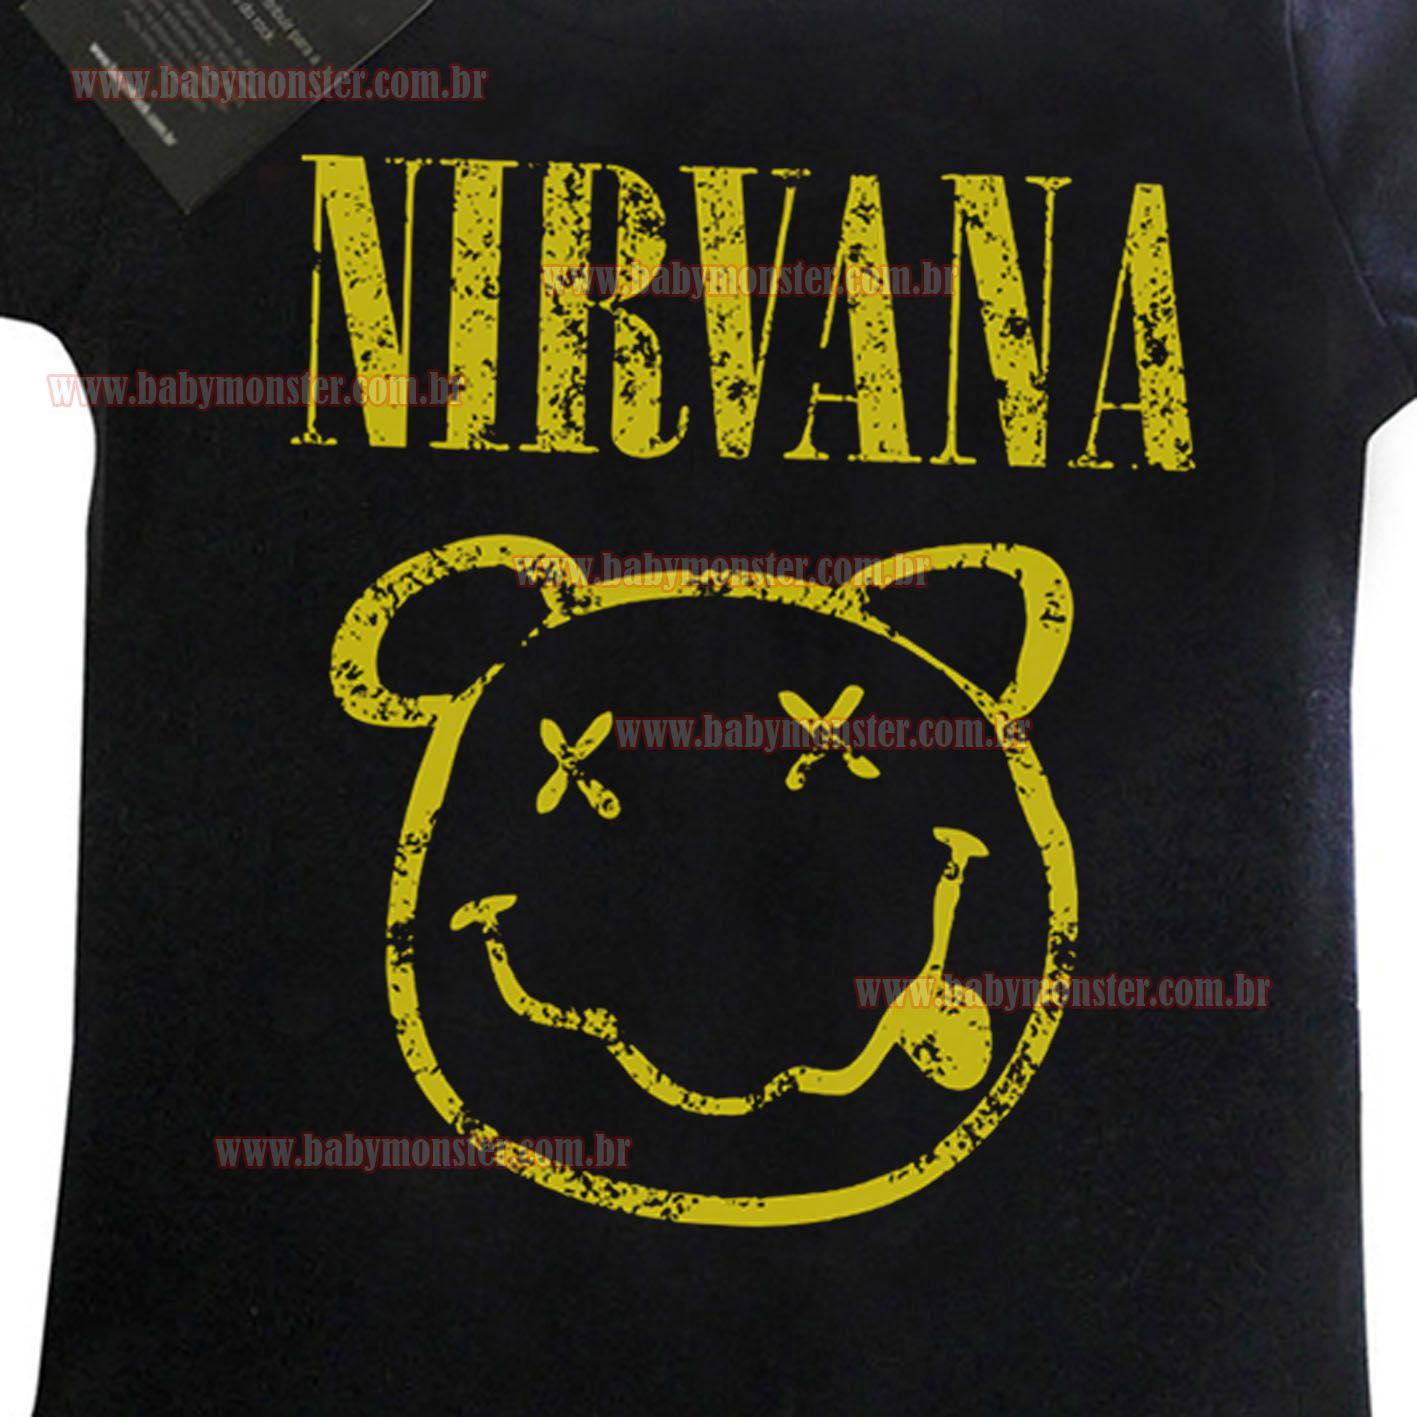 Body Rock  Bebe  Nirvana - Black  - Baby Monster S/A